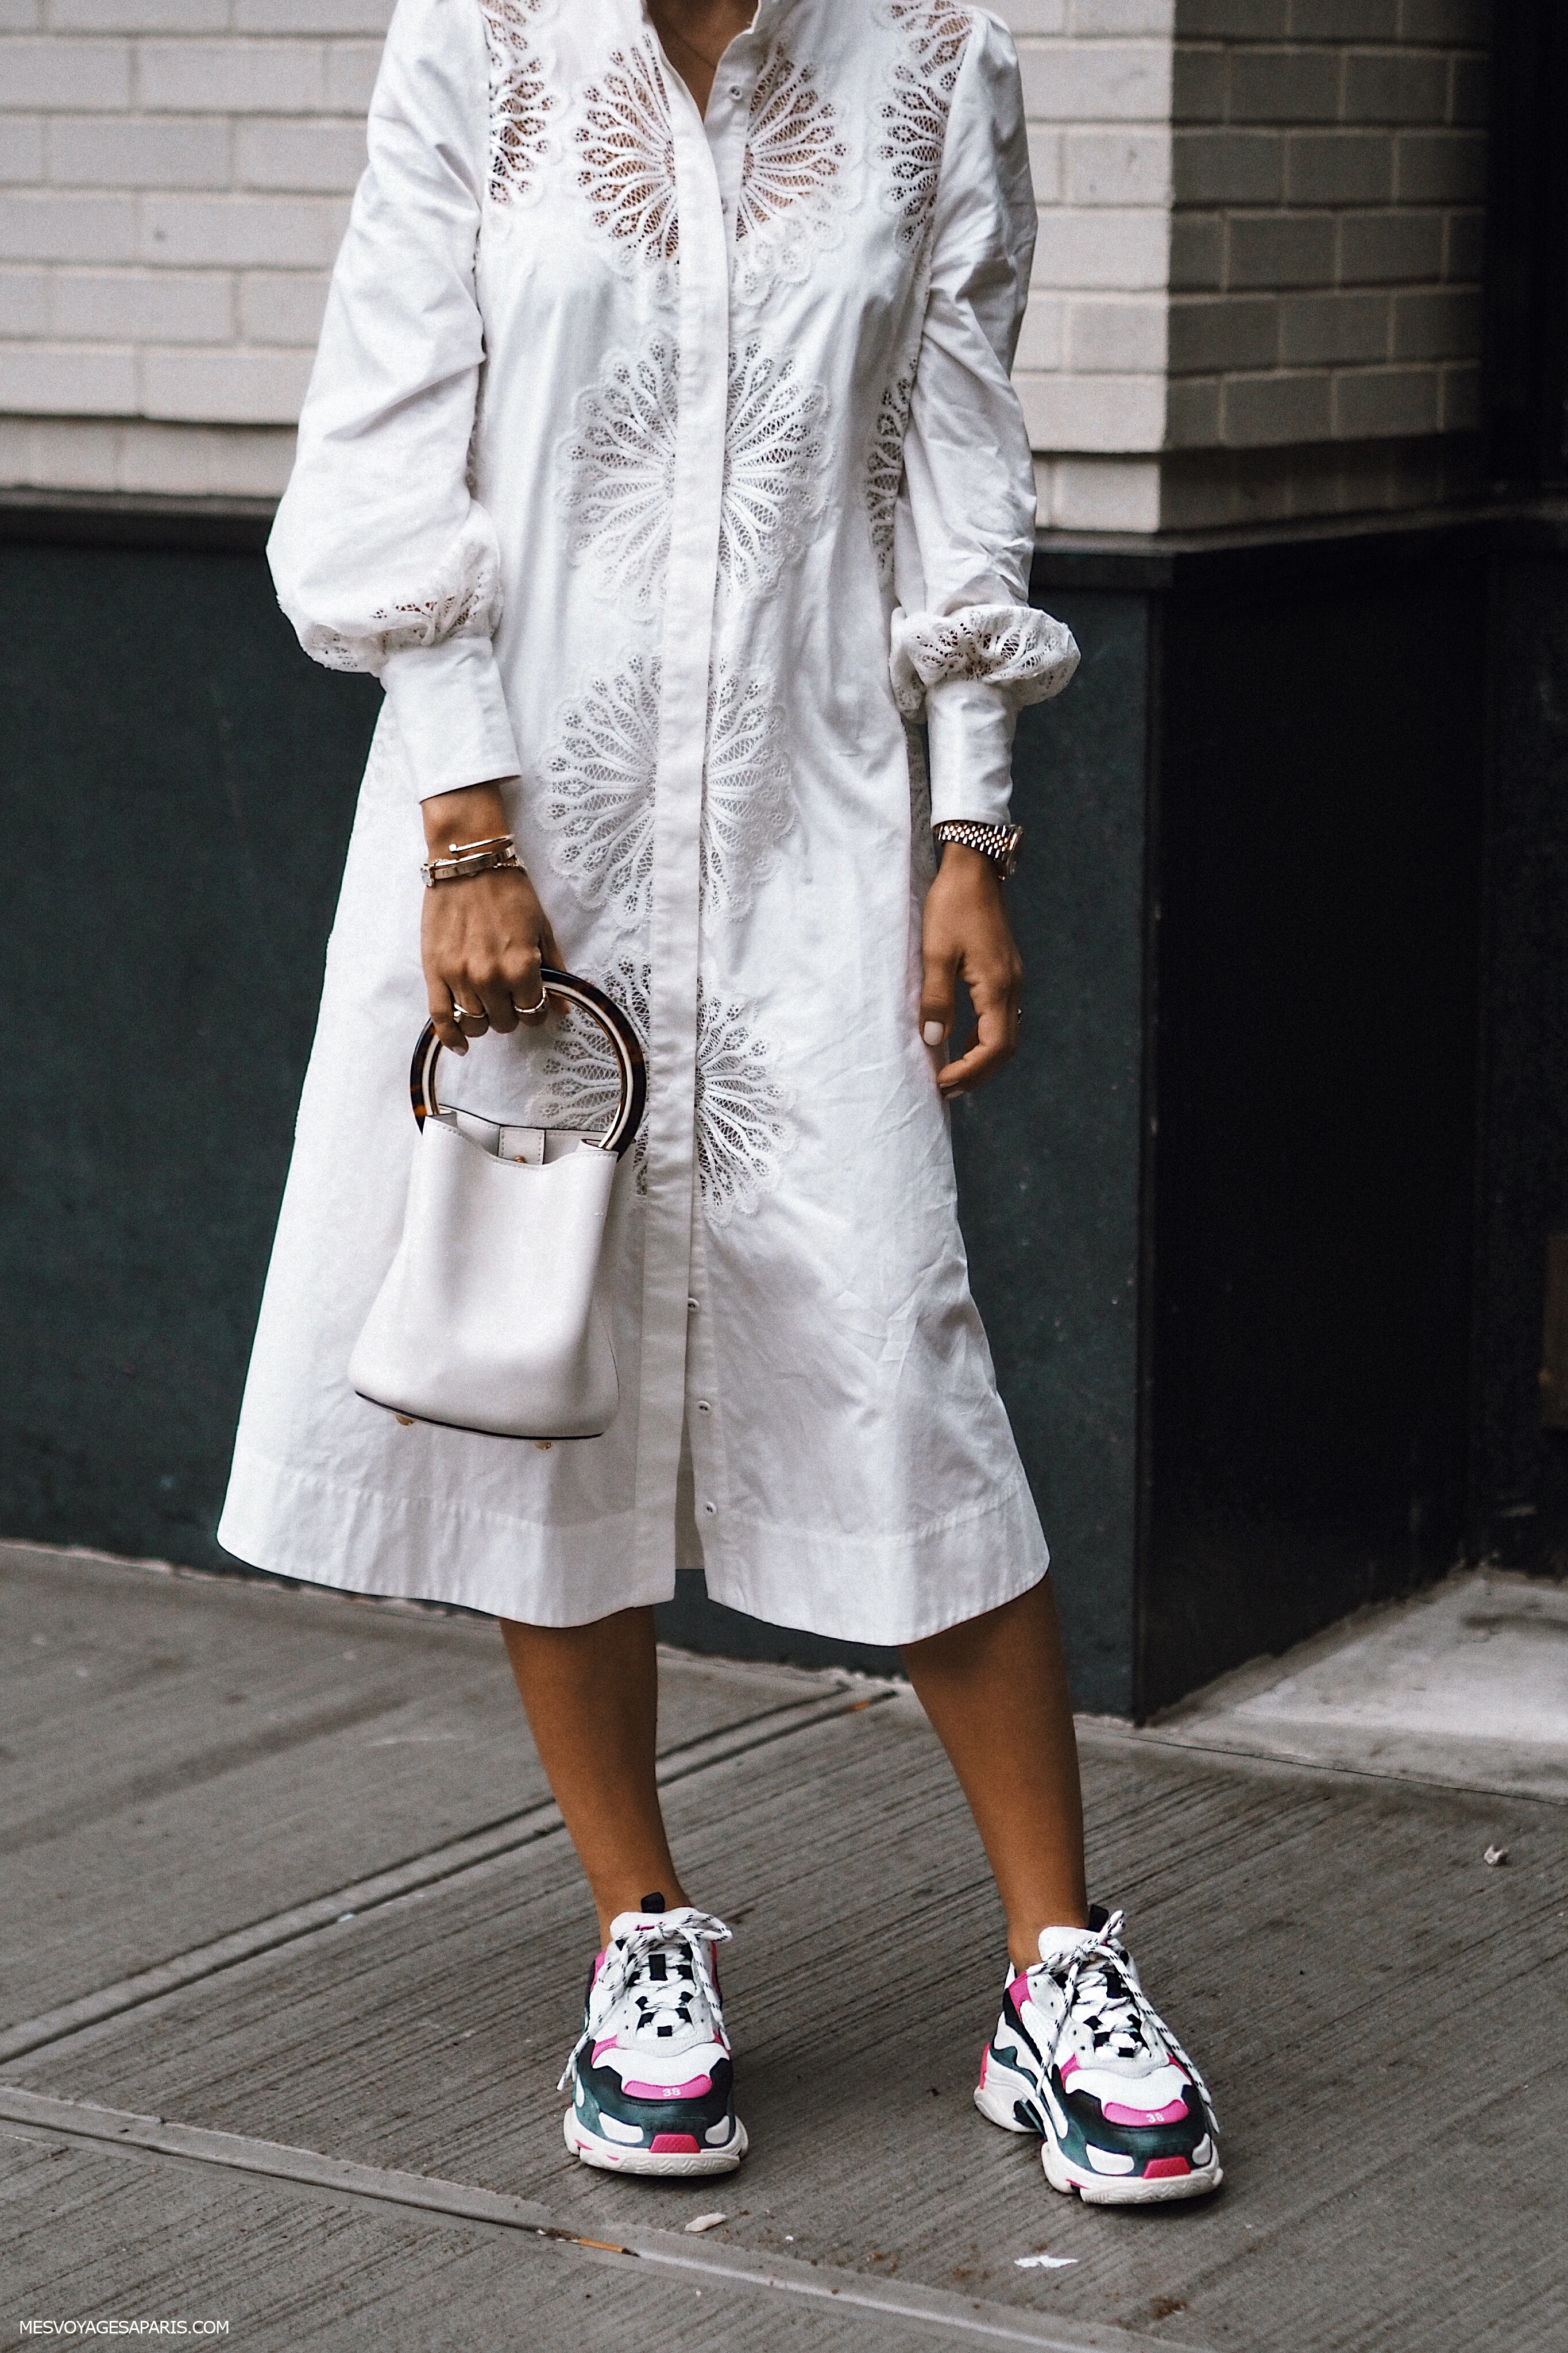 NYFW Street Style September 2018 white looks Tamara sneakers